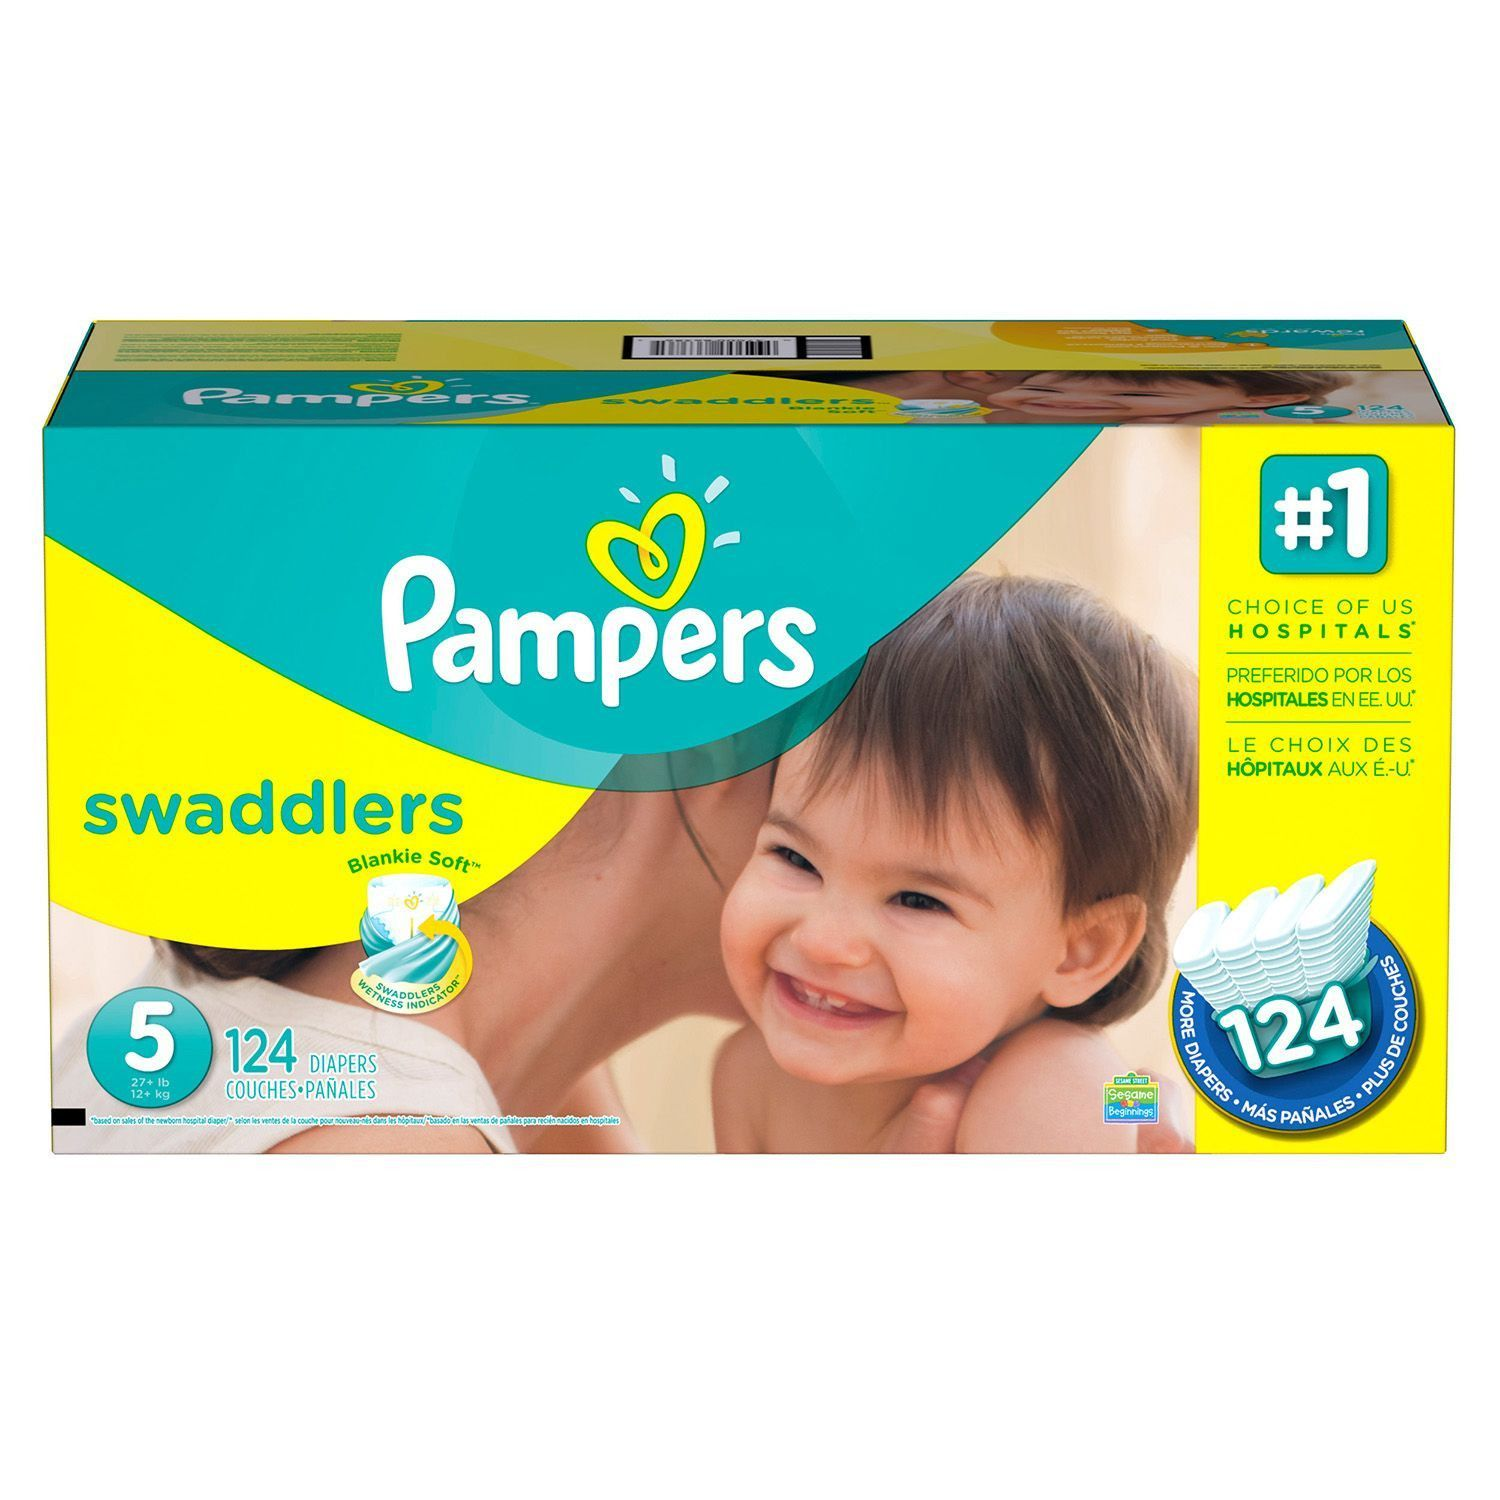 Pampers Swaddlers Diapers Economy Pack